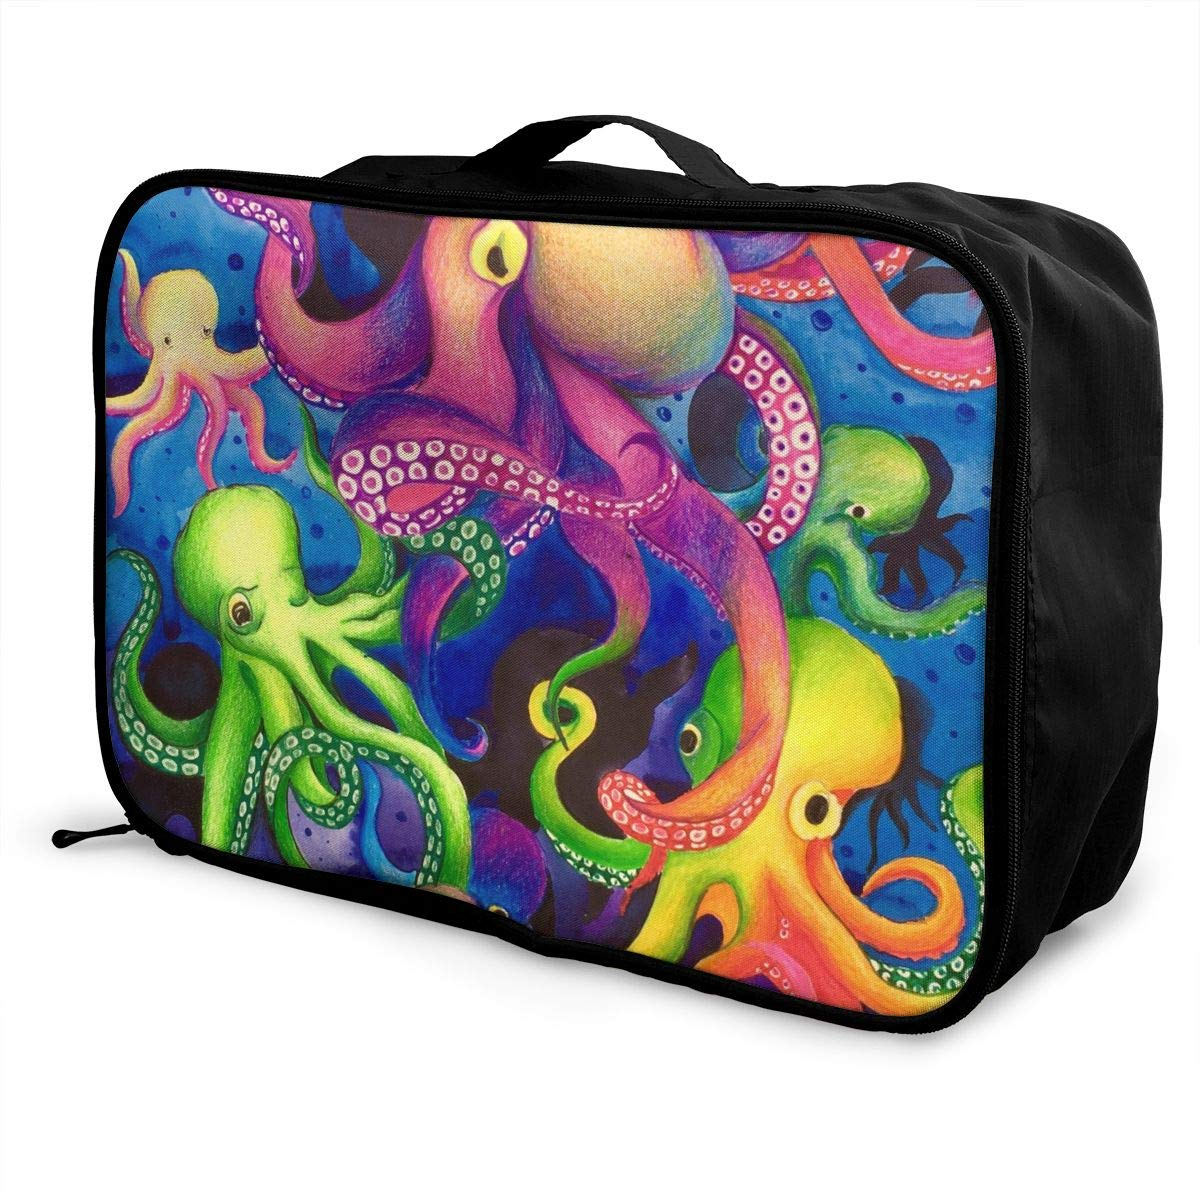 Hd8yehao Colorful Octopuses Travel Duffel Bag Lightweight Waterproof Large Capacity Portable Luggage Bag